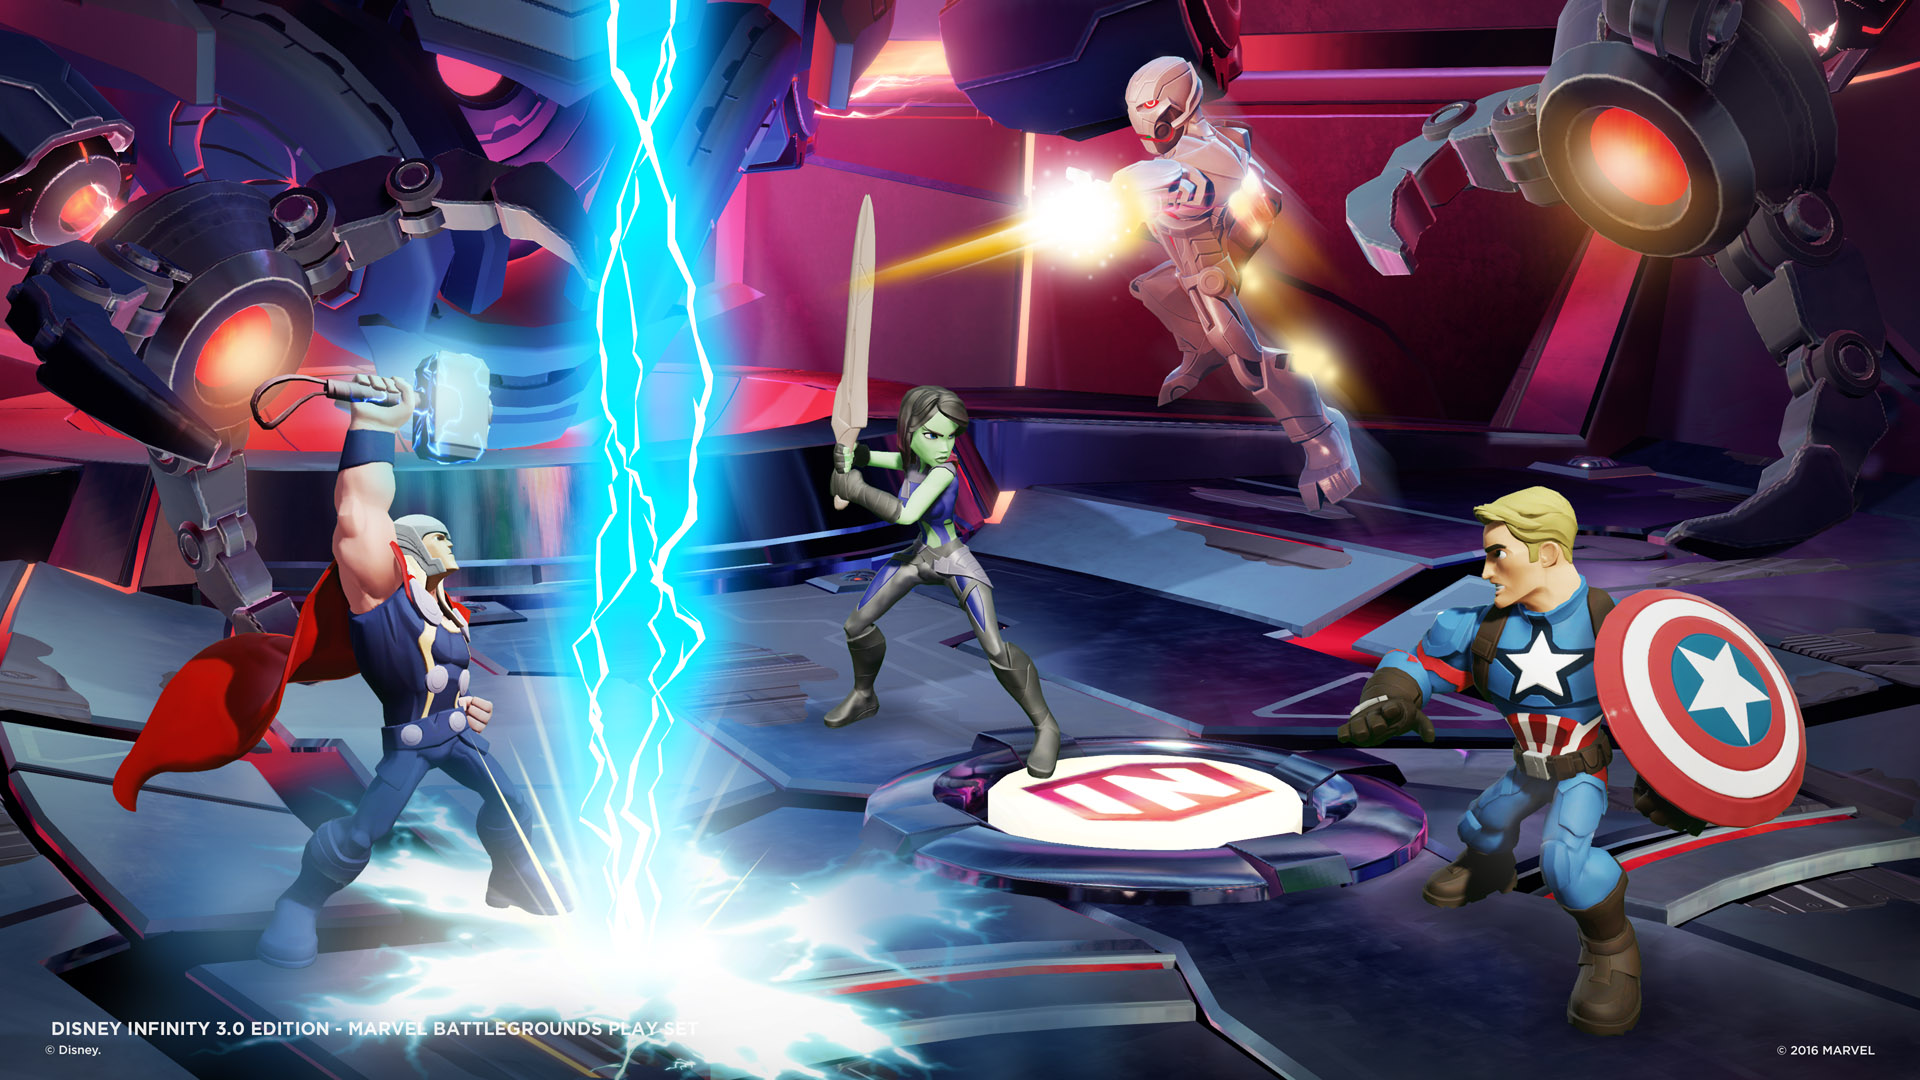 Disney-Infinity-Marvel-Battlegrounds-Ultron